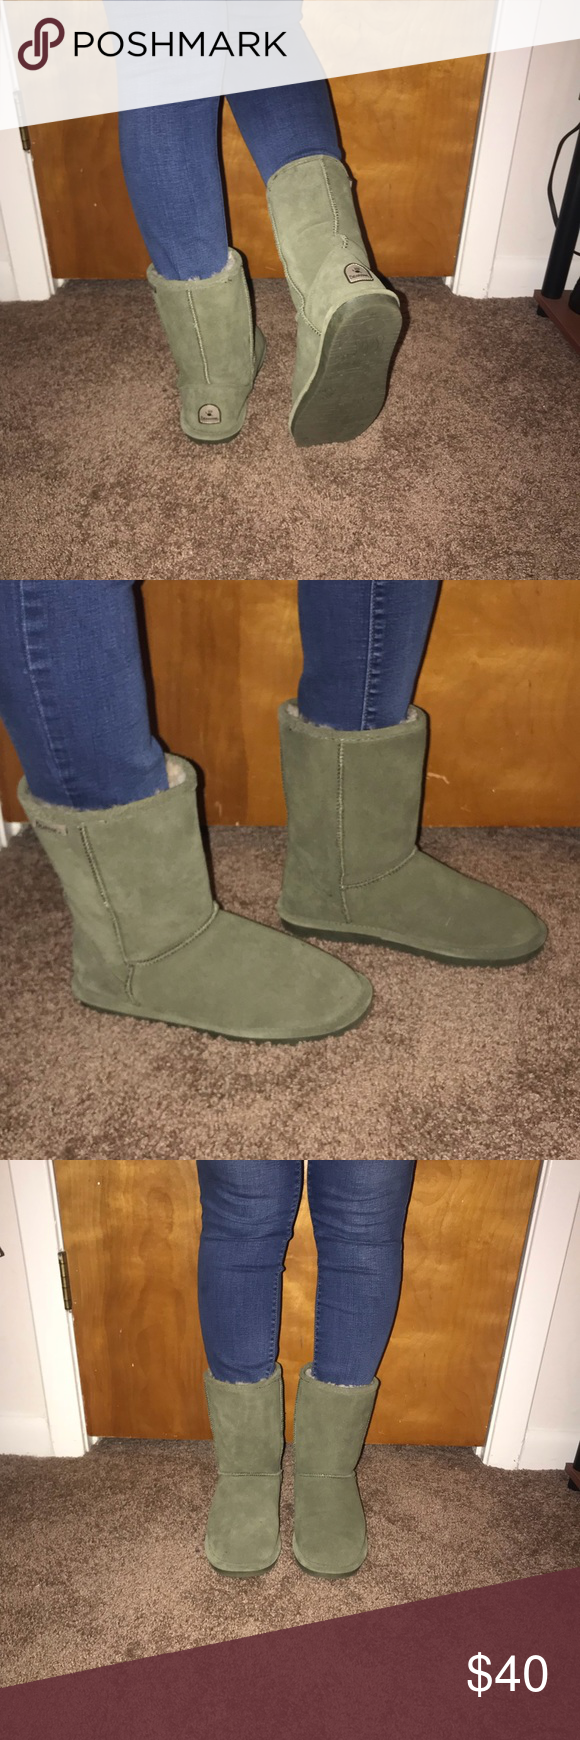 Light Olive Green BearPaw Boots | Boots